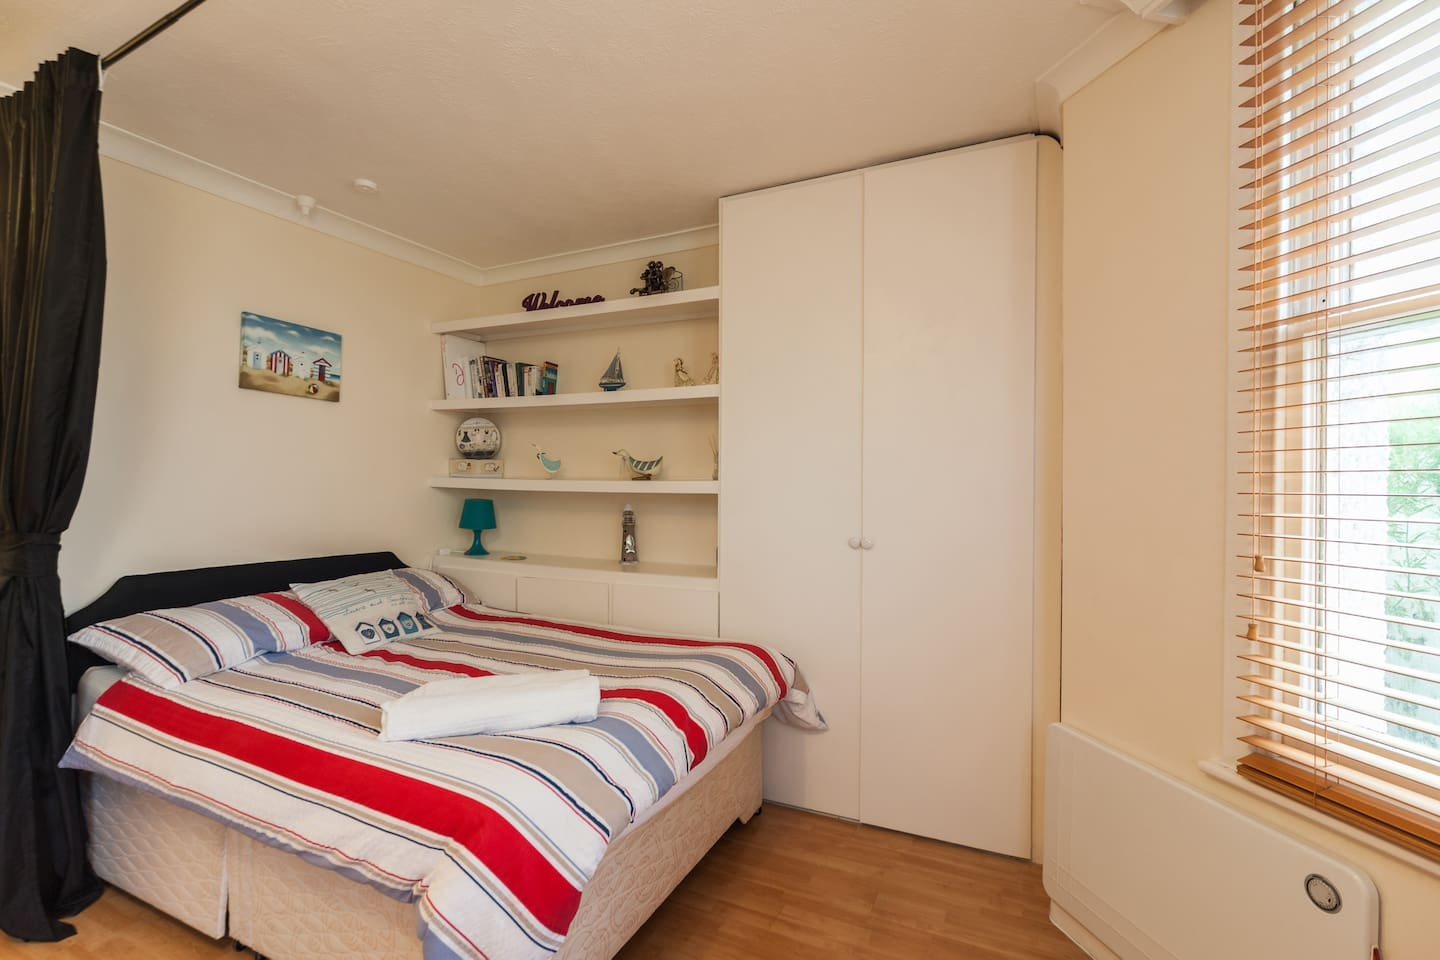 Double Bed Sleeping Area Separated by Curtain for privacy.